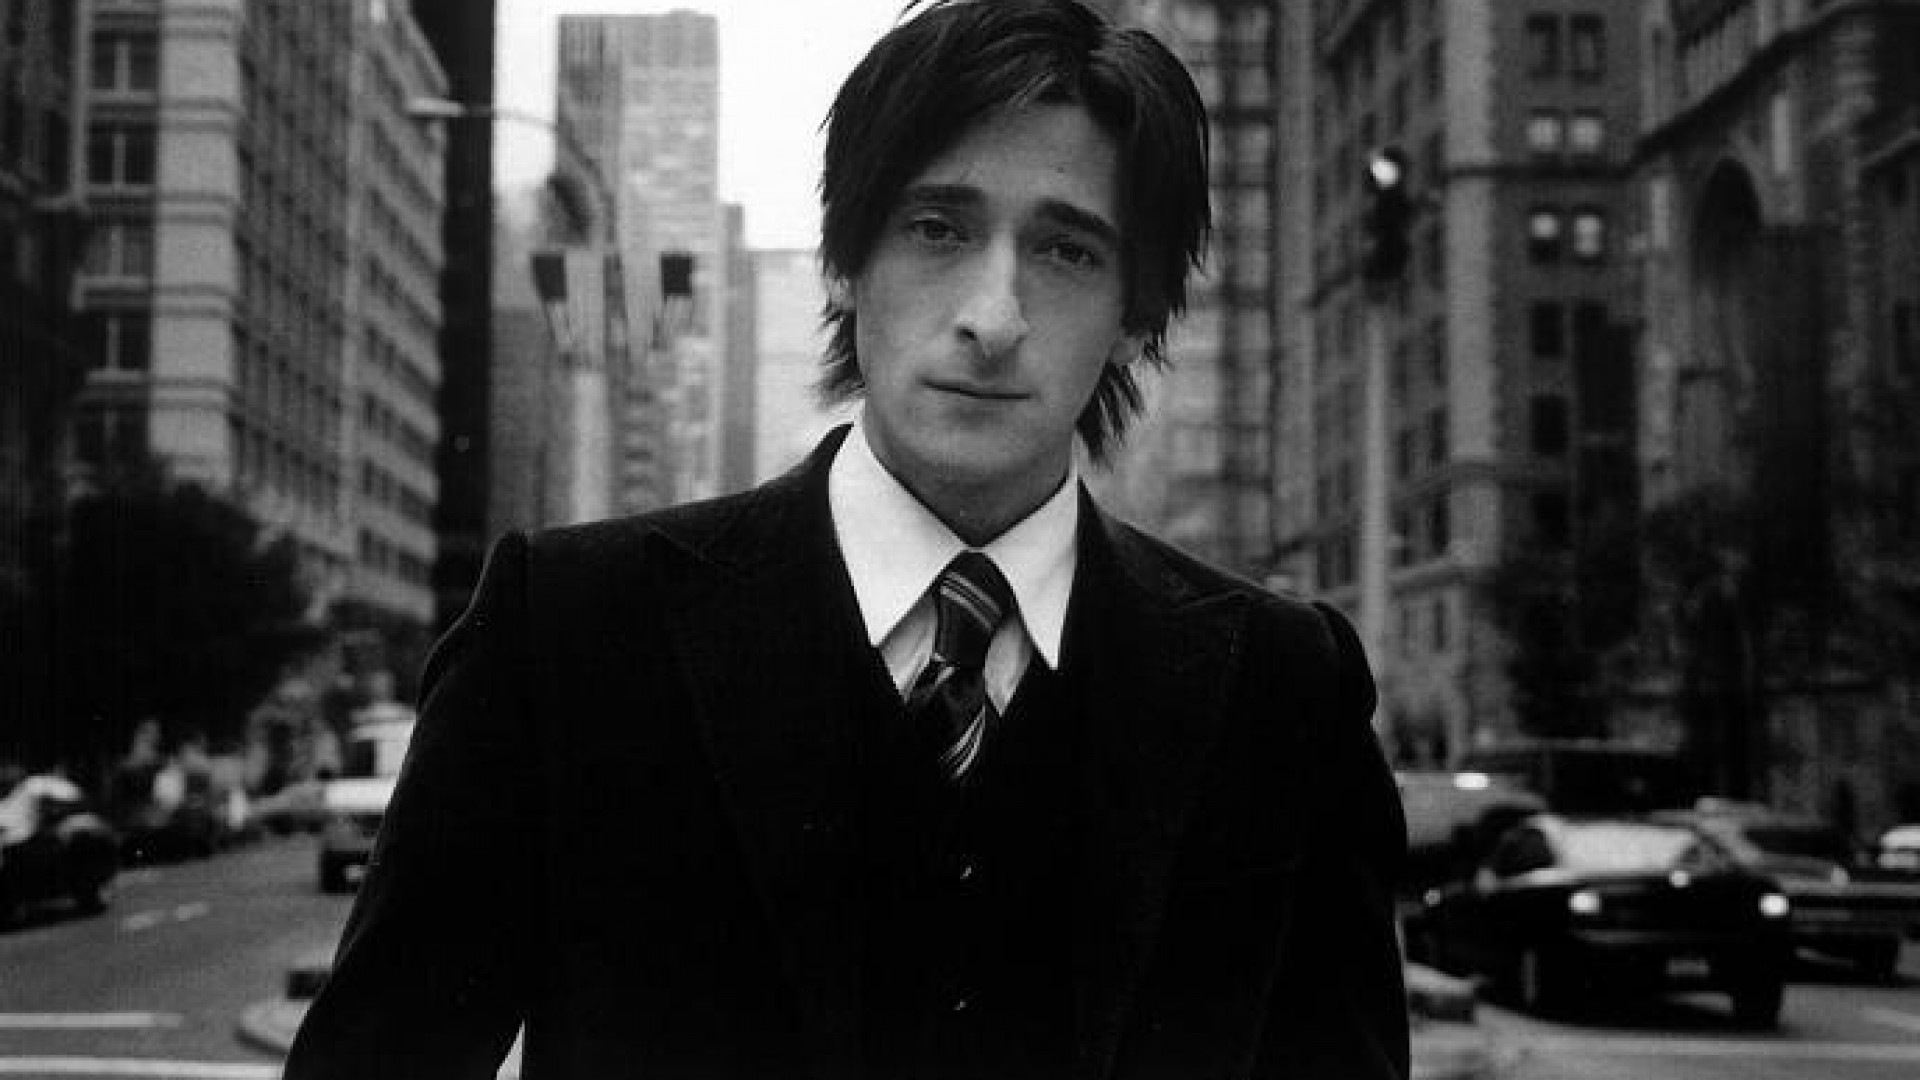 adrien brody 2016adrien brody фильмы, adrien brody films, adrien brody height, adrien brody 2016, adrien brody oscar, adrien brody 2017, adrien brody instagram, adrien brody tumblr, adrien brody wikipedia, adrien brody pianist, adrien brody lara lieto, adrien brody young, adrien brody net worth, adrien brody photoshoot, adrien brody vk, adrien brody wiki, adrien brody splice, adrien brody houdini, adrien brody кинопоиск, adrien brody kimdir